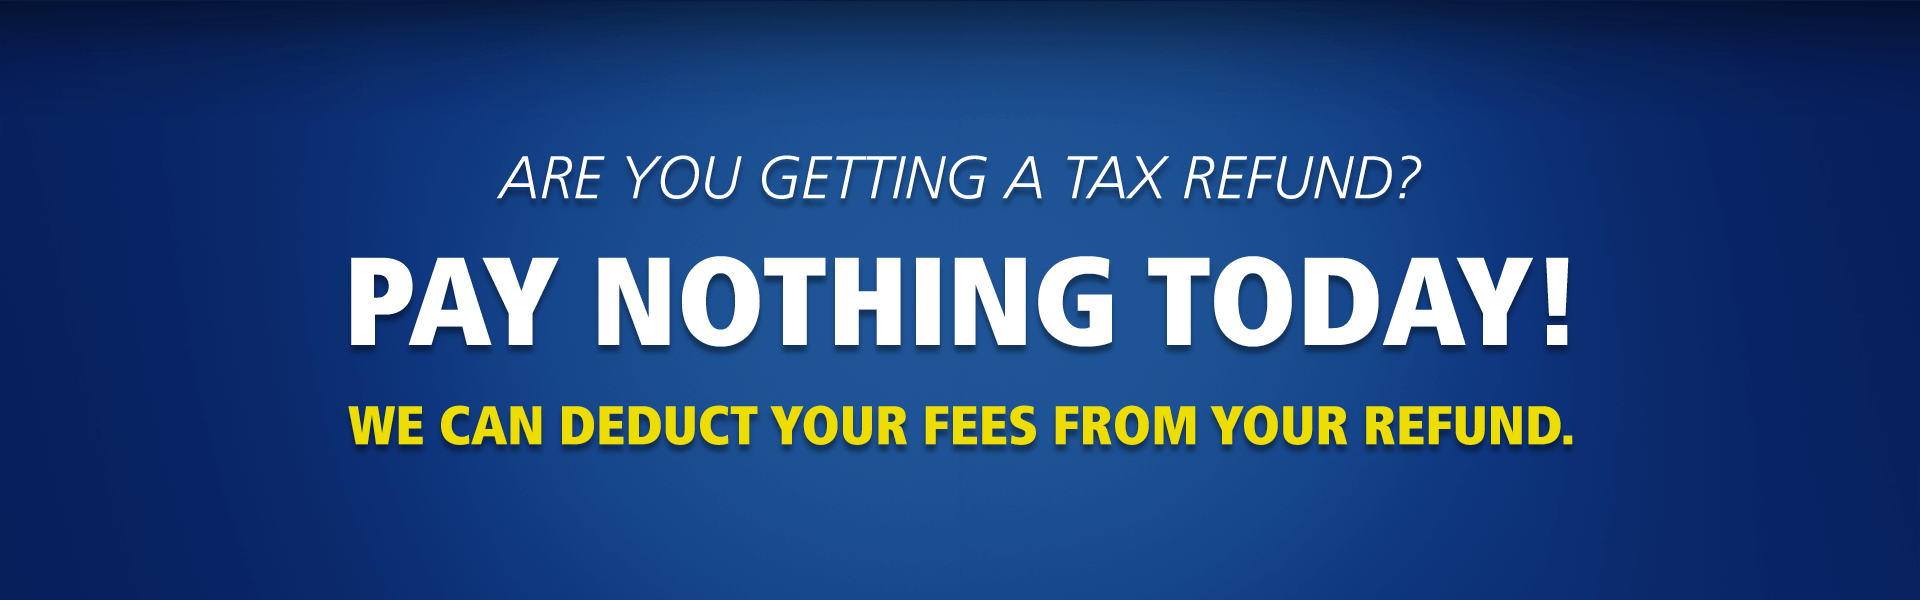 Pay Nothing Today. We can take your tax preparation fees out of your refund.